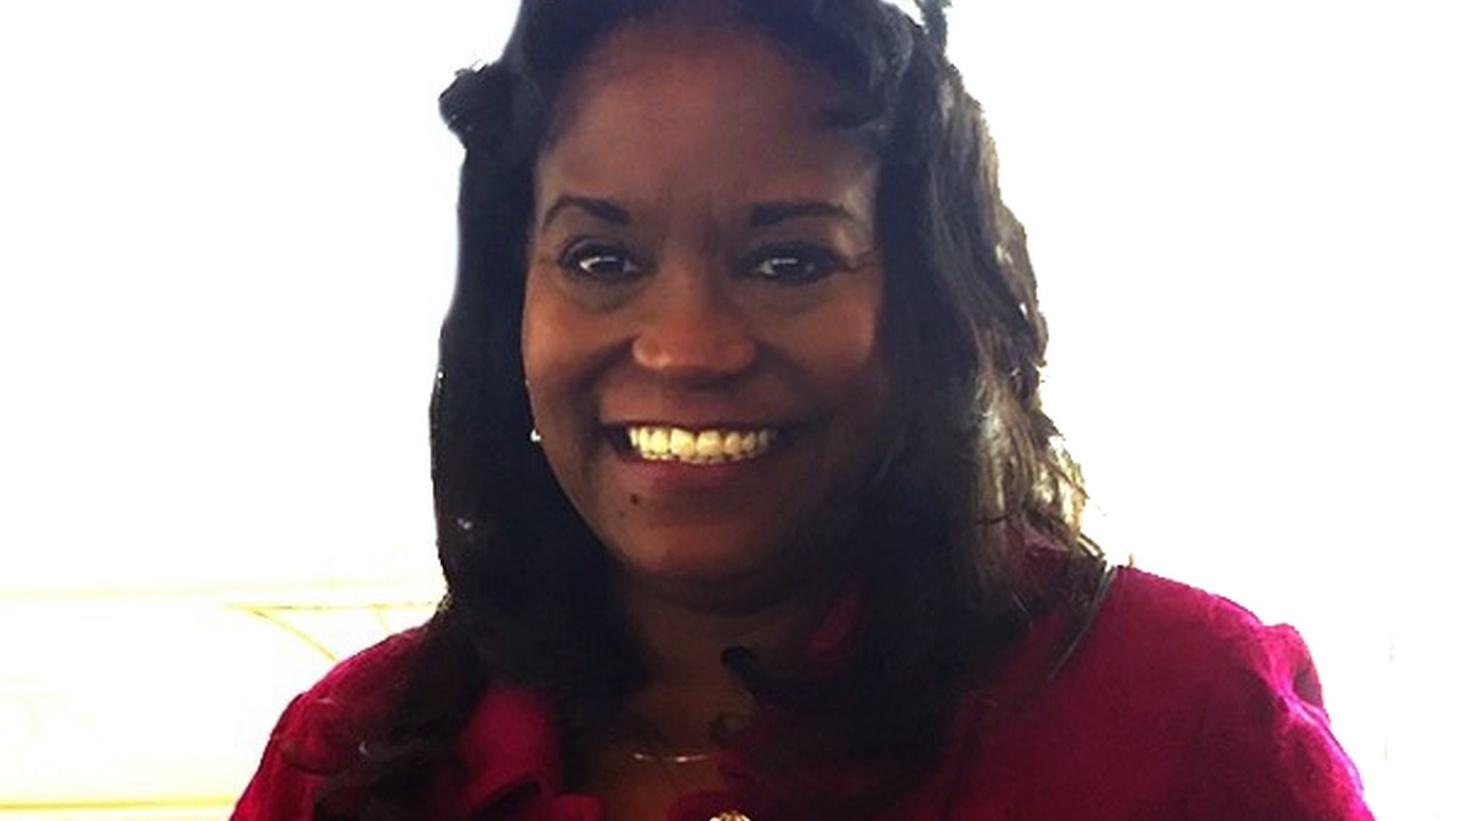 The Los Angeles Unified School District has a new superintendent today, Michelle King. What do we know about her?